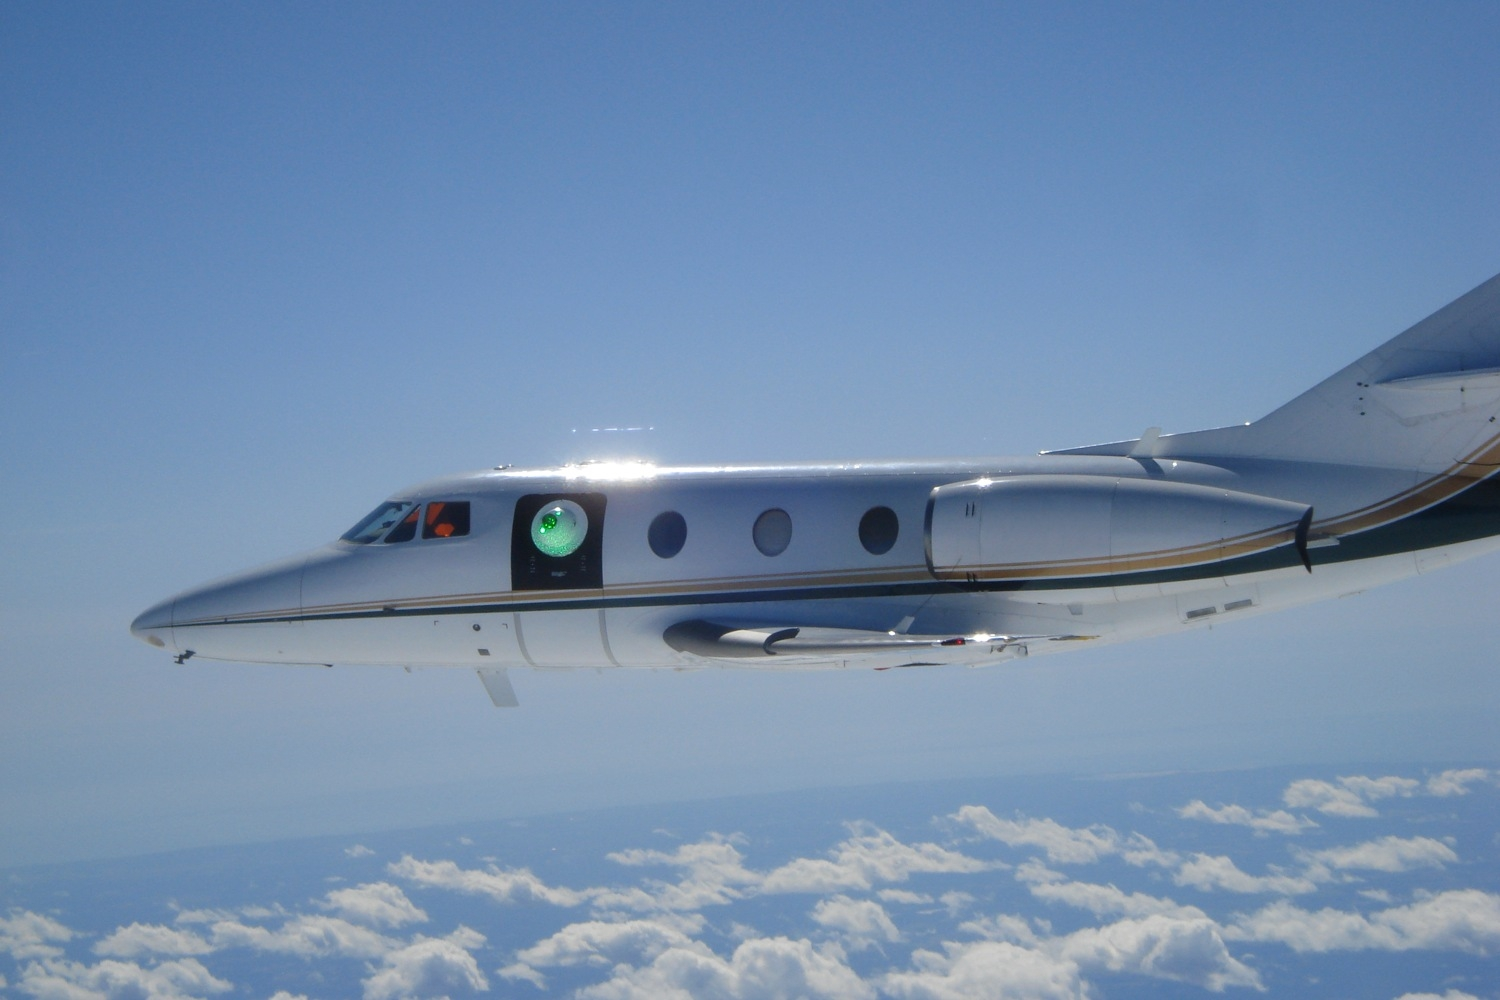 The US Now Has A Jet Armed With A Laser Cannon